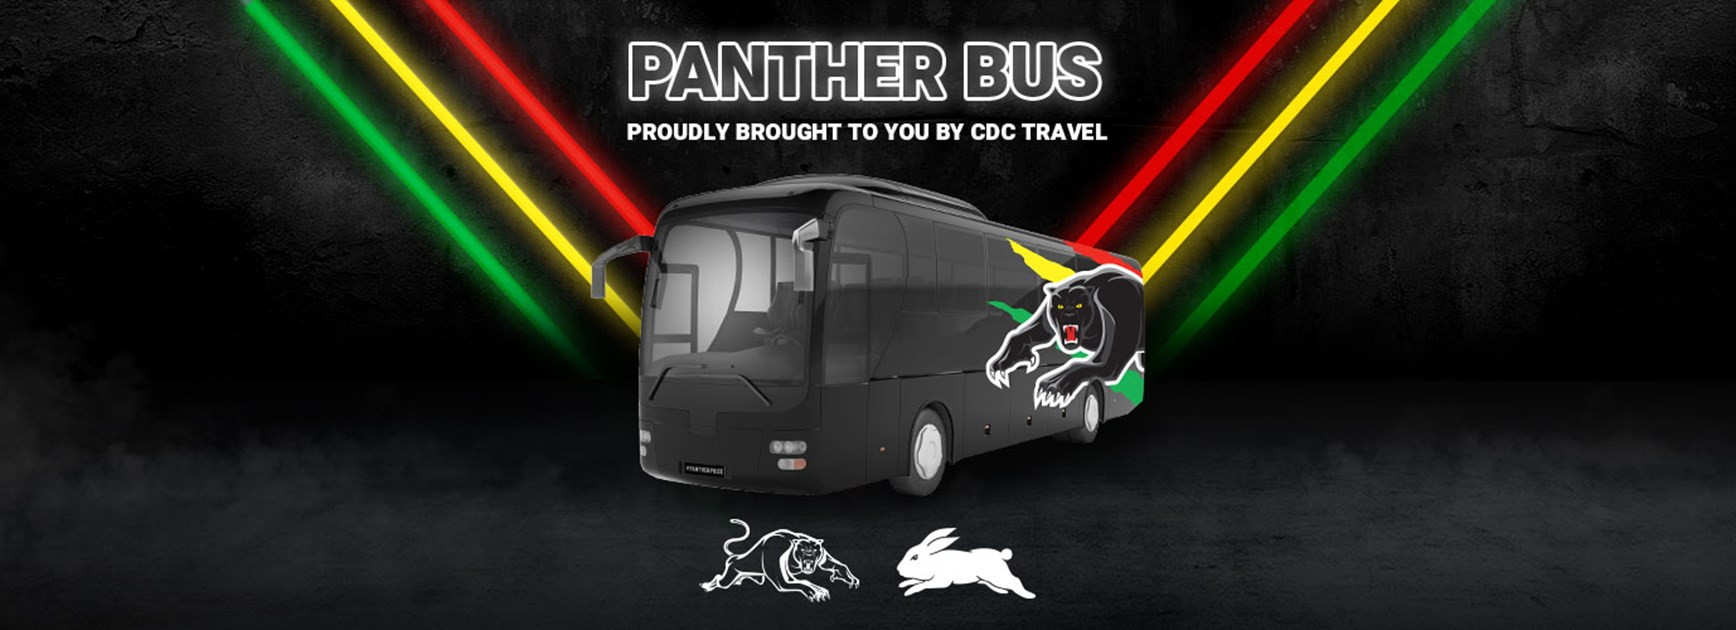 CDC Travel Panther Bus: Round 14